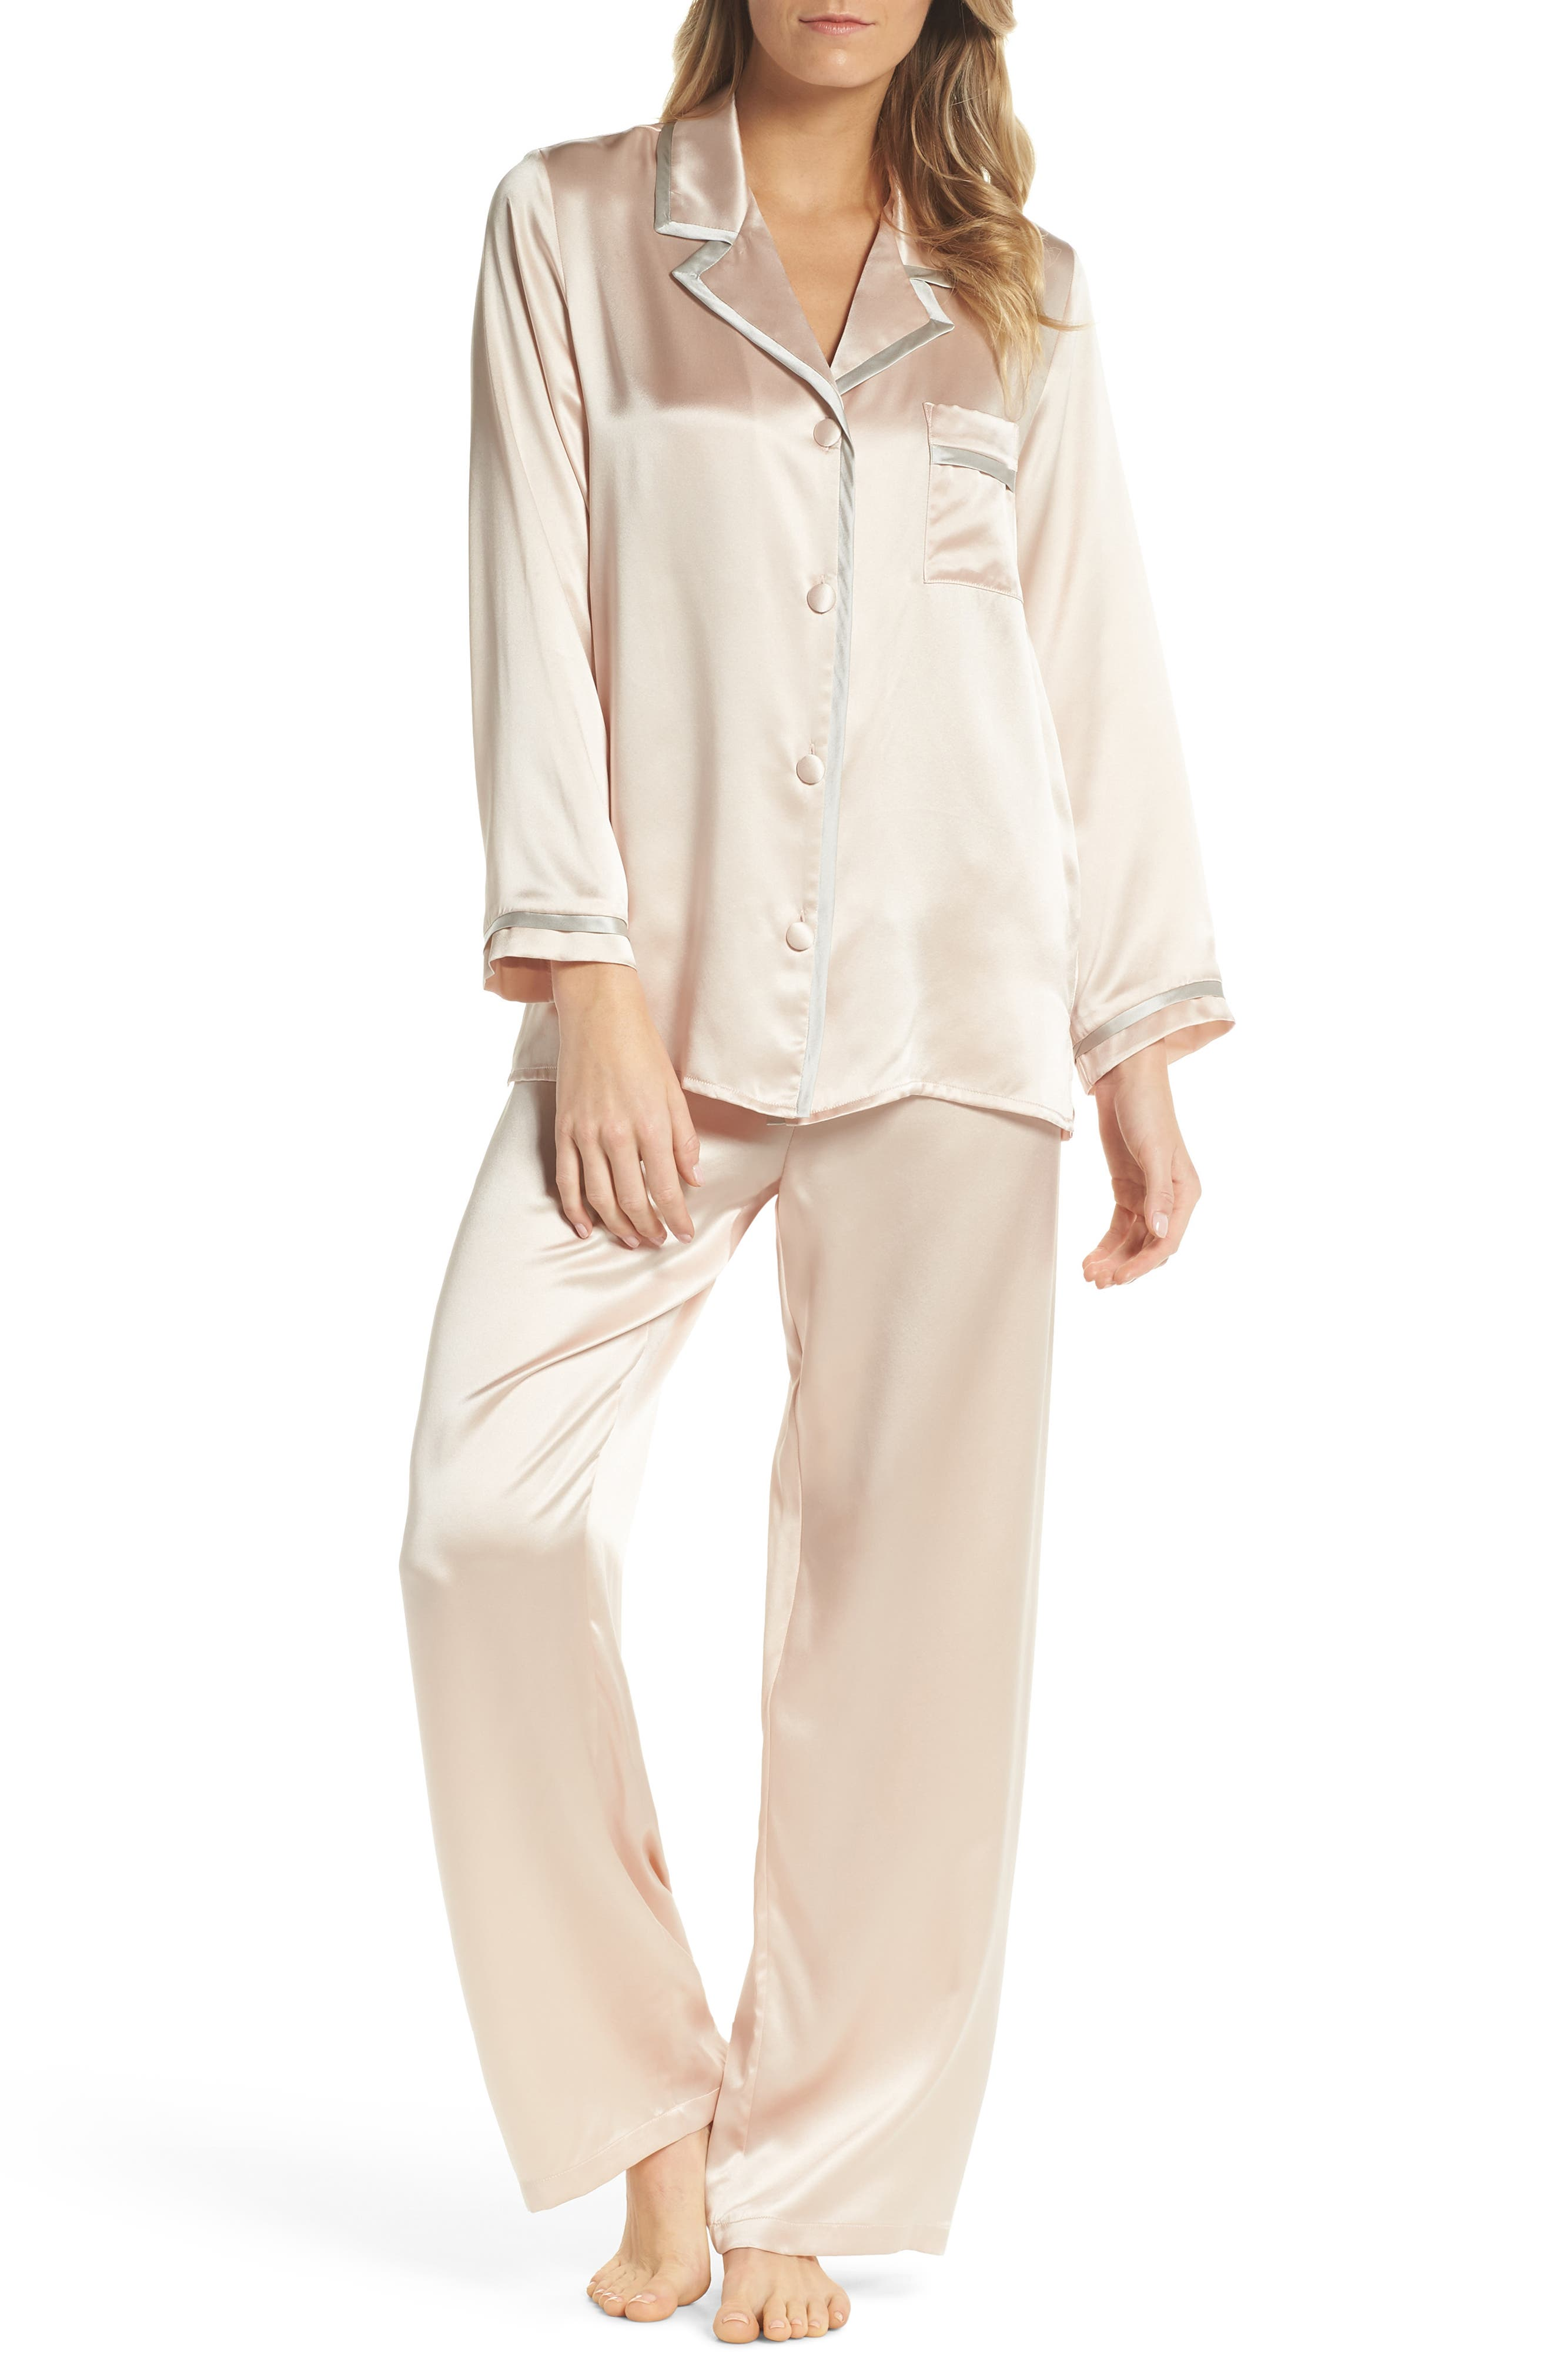 Coco Silk Pajamas,                             Main thumbnail 1, color,